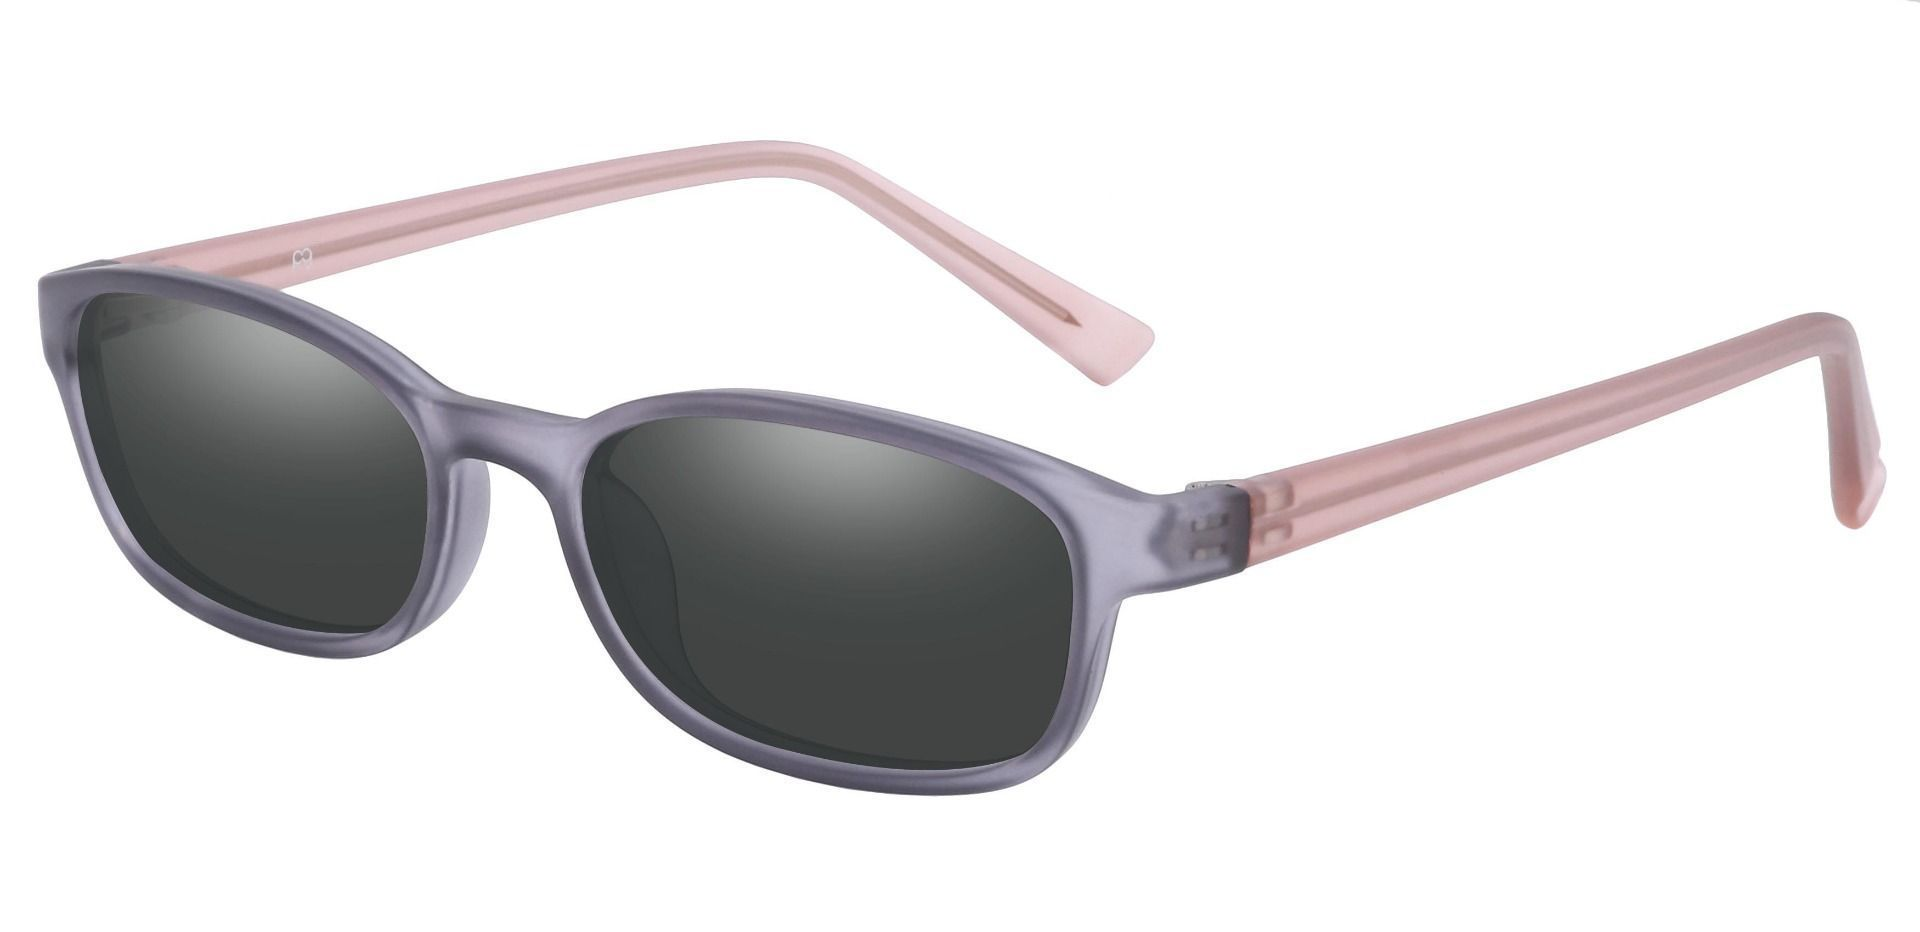 Kia Oval Single Vision Sunglasses -  Gray Frame With Gray Lenses